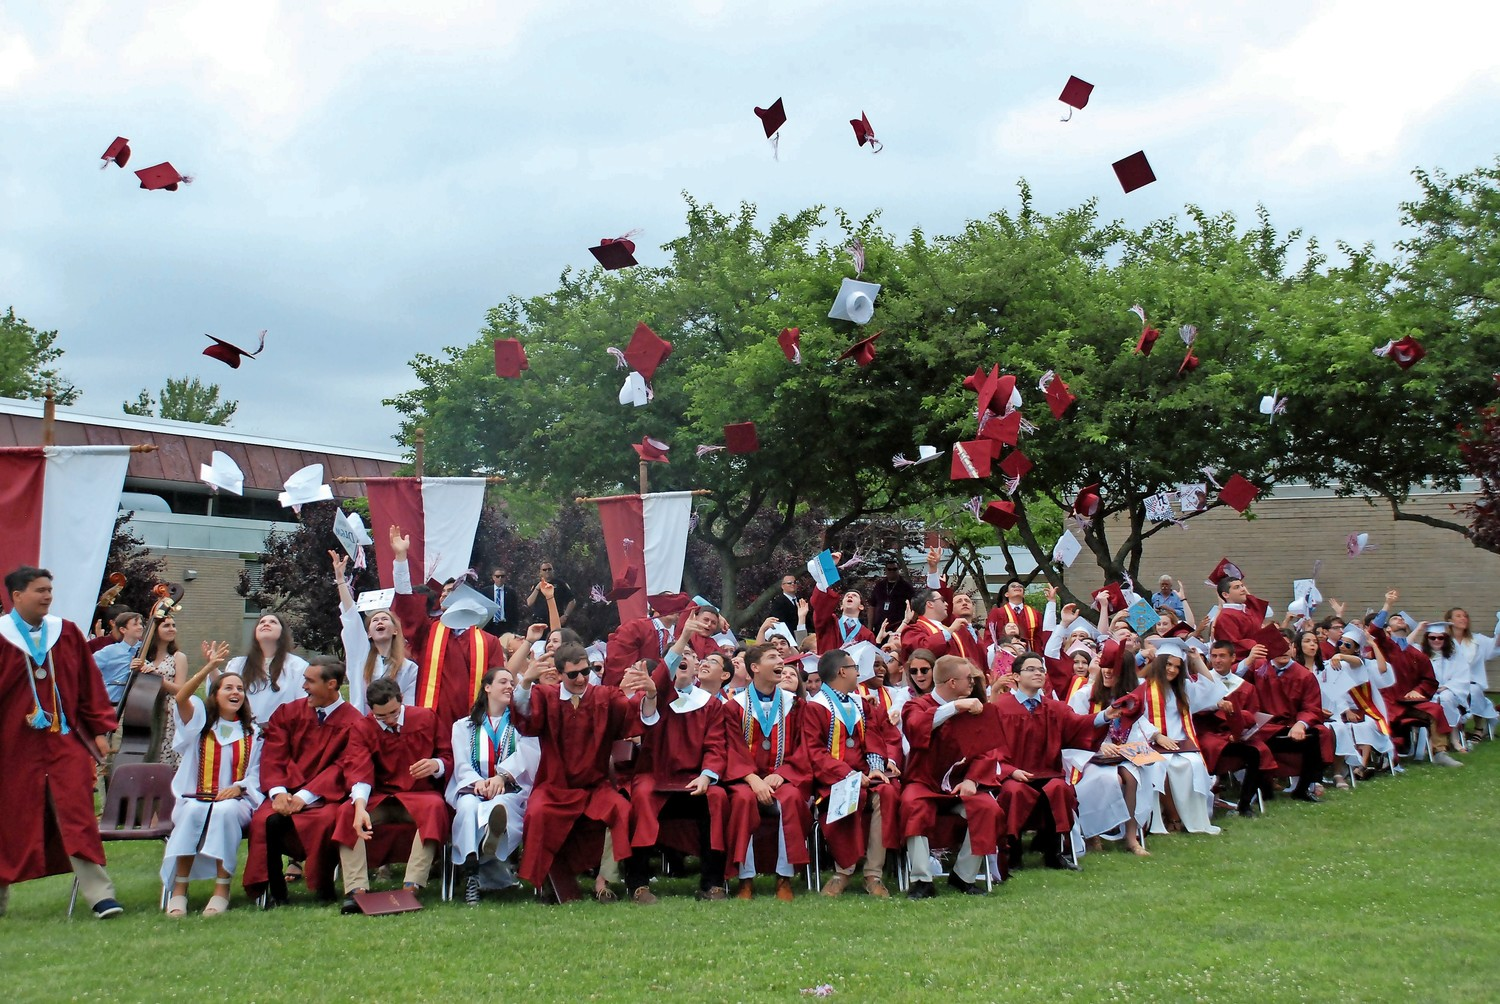 After they moved their tassels across their mortarboards, North Shore High's latest graduating class tossed the caps in the air, creating a cascade of maroon and white.